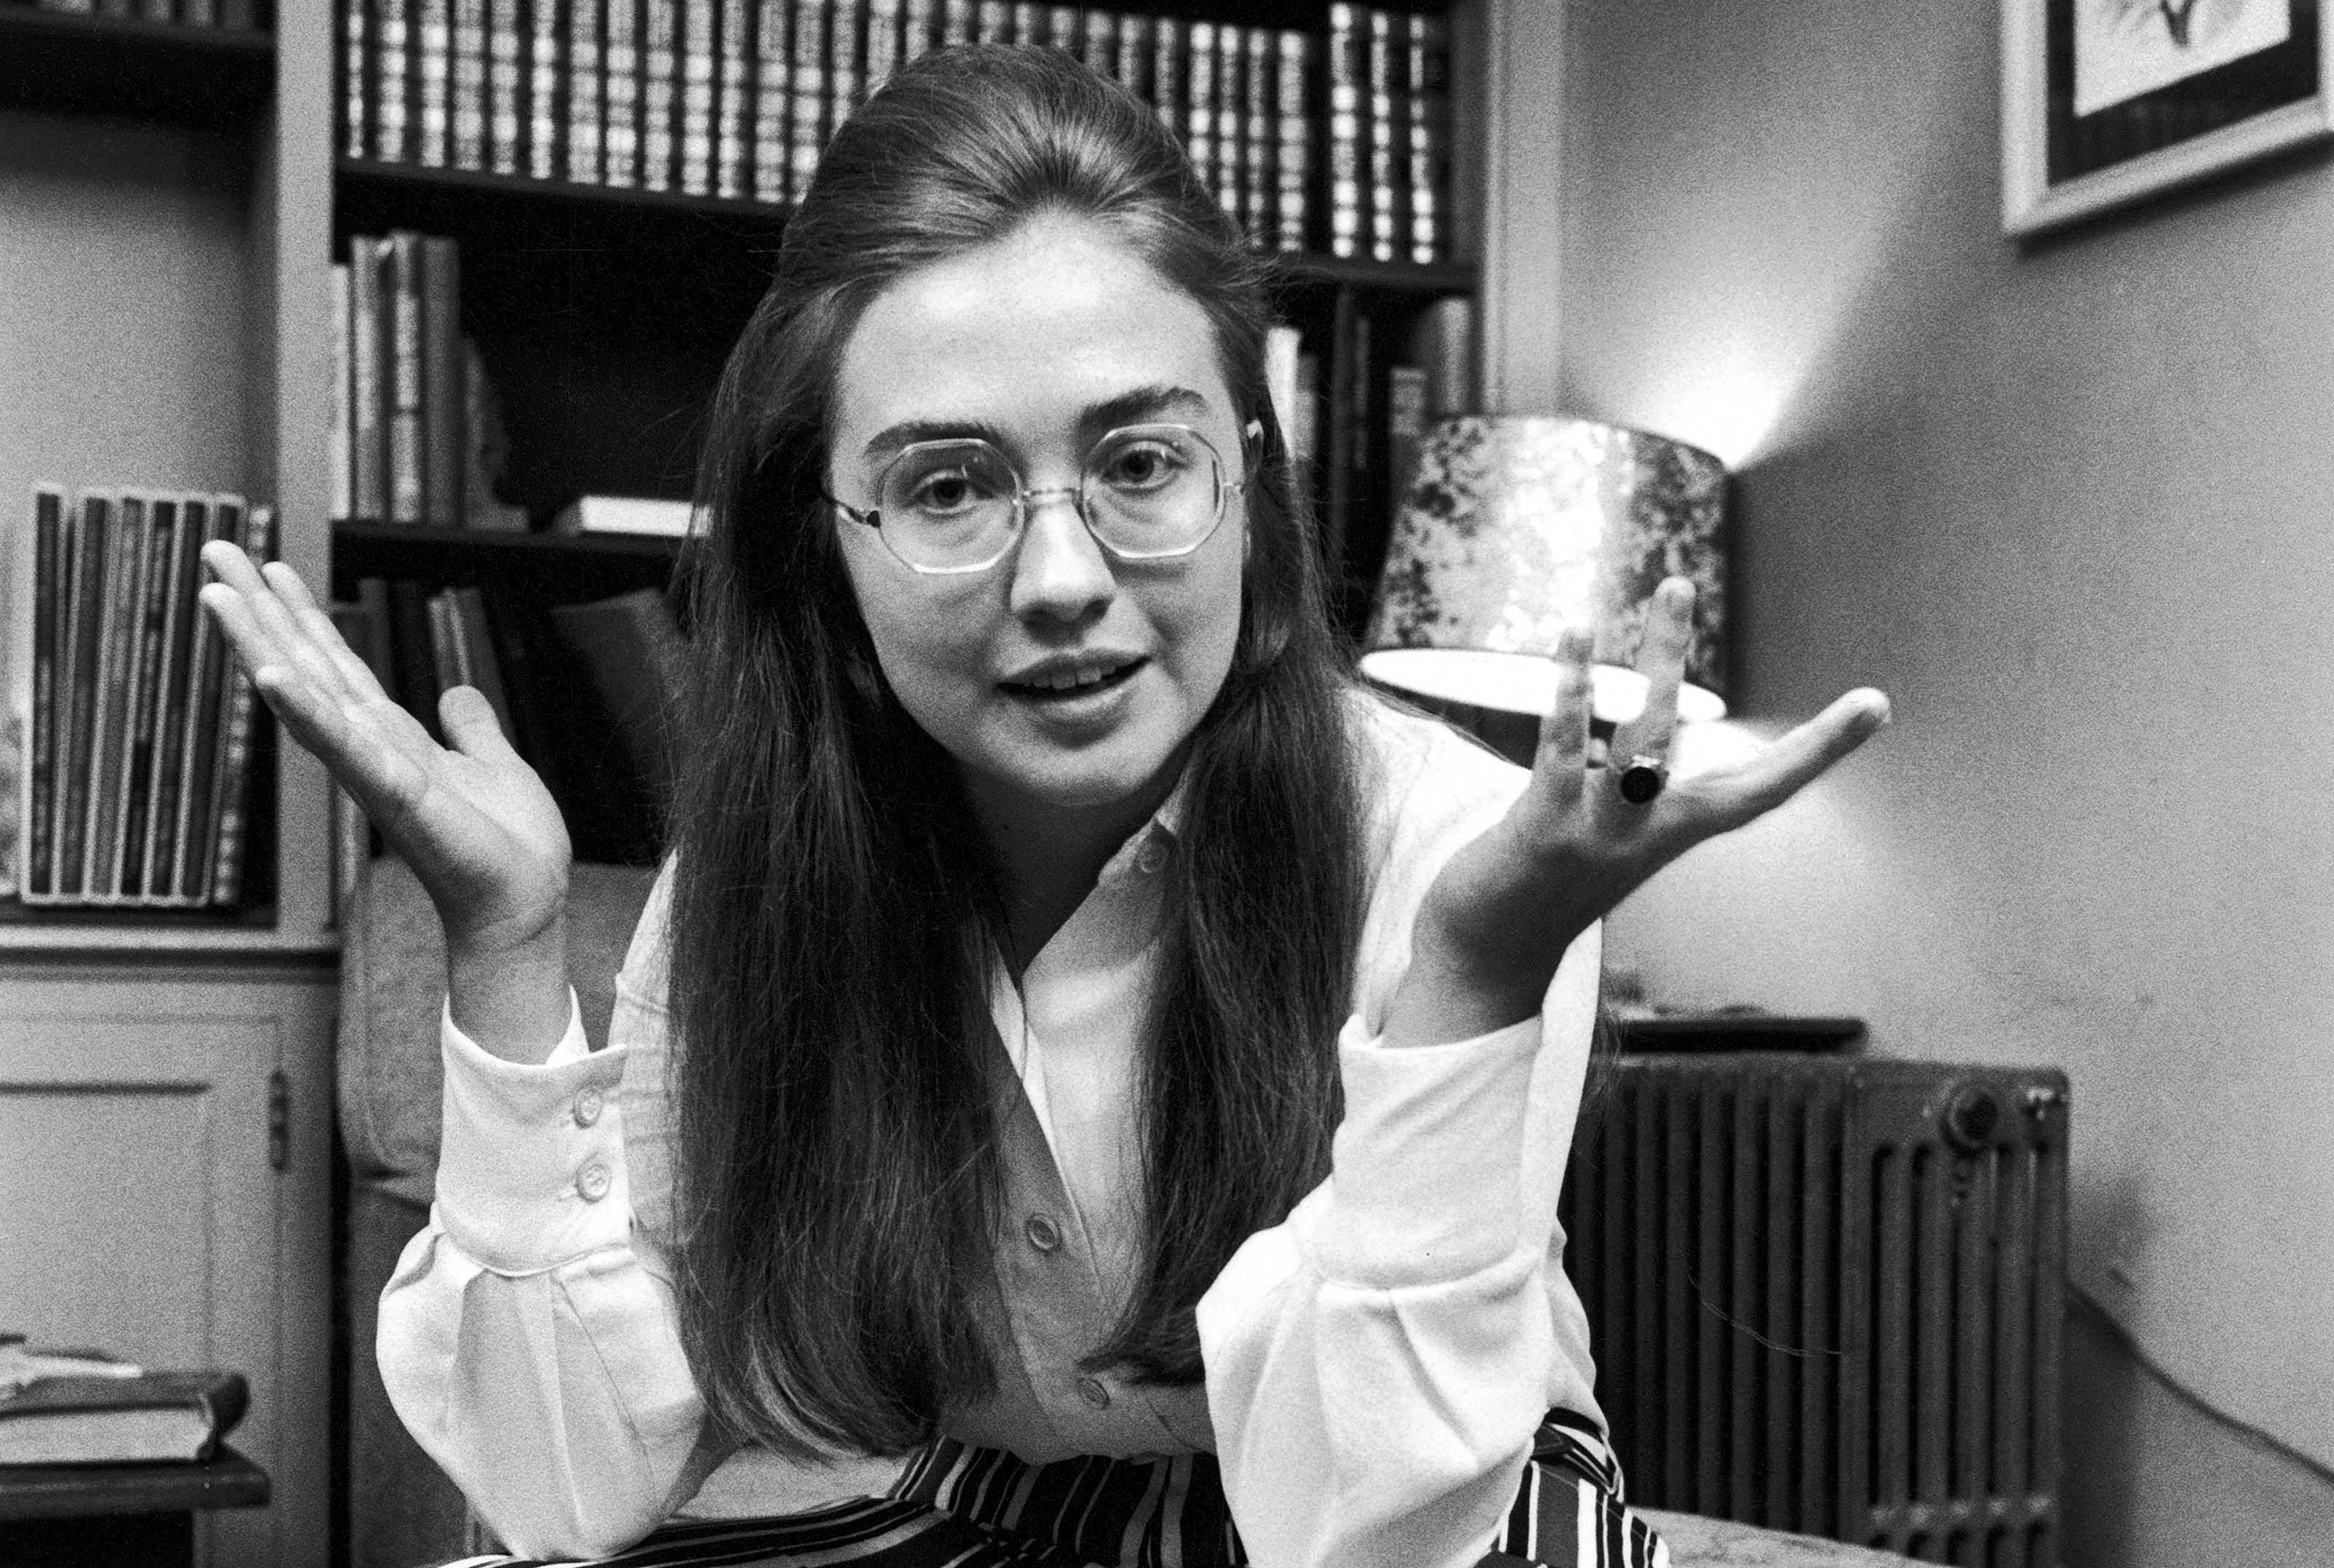 Hillary Rodham while at Wellesley College, 1969.